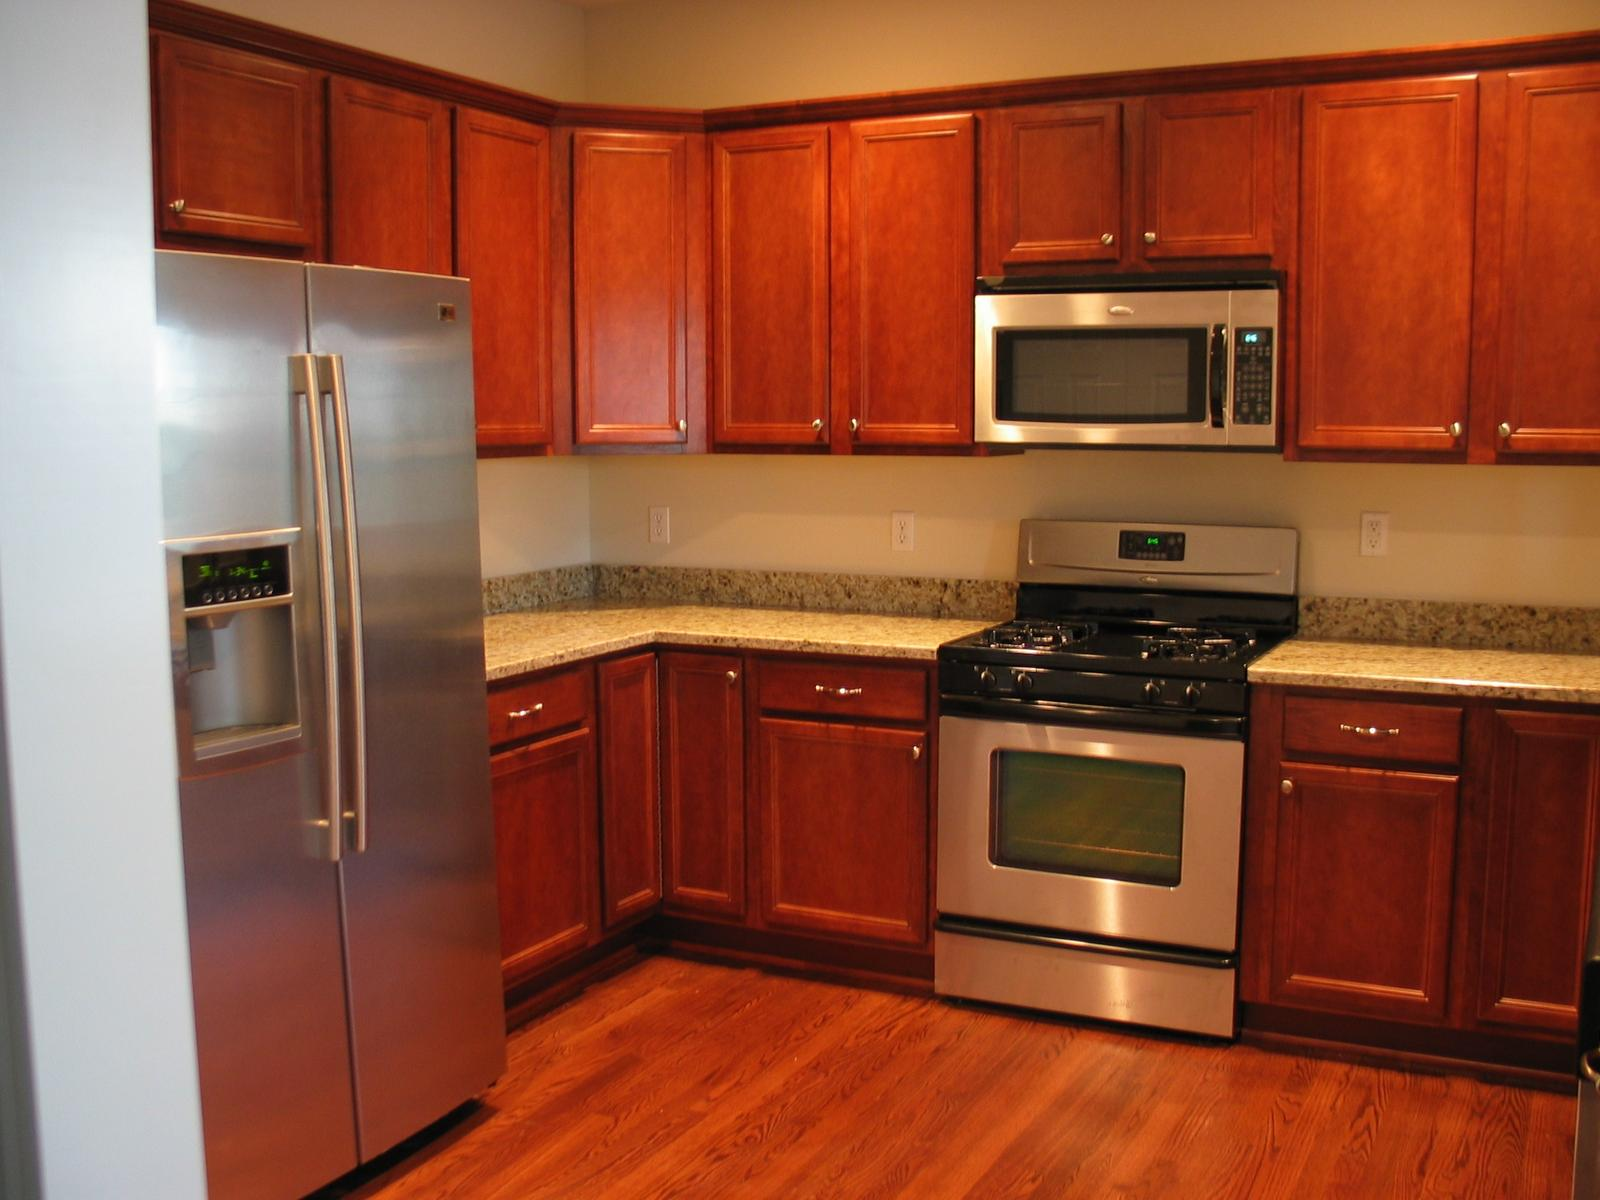 New townhouse for sale in pittsburgh classified ads buy for New kitchens for sale